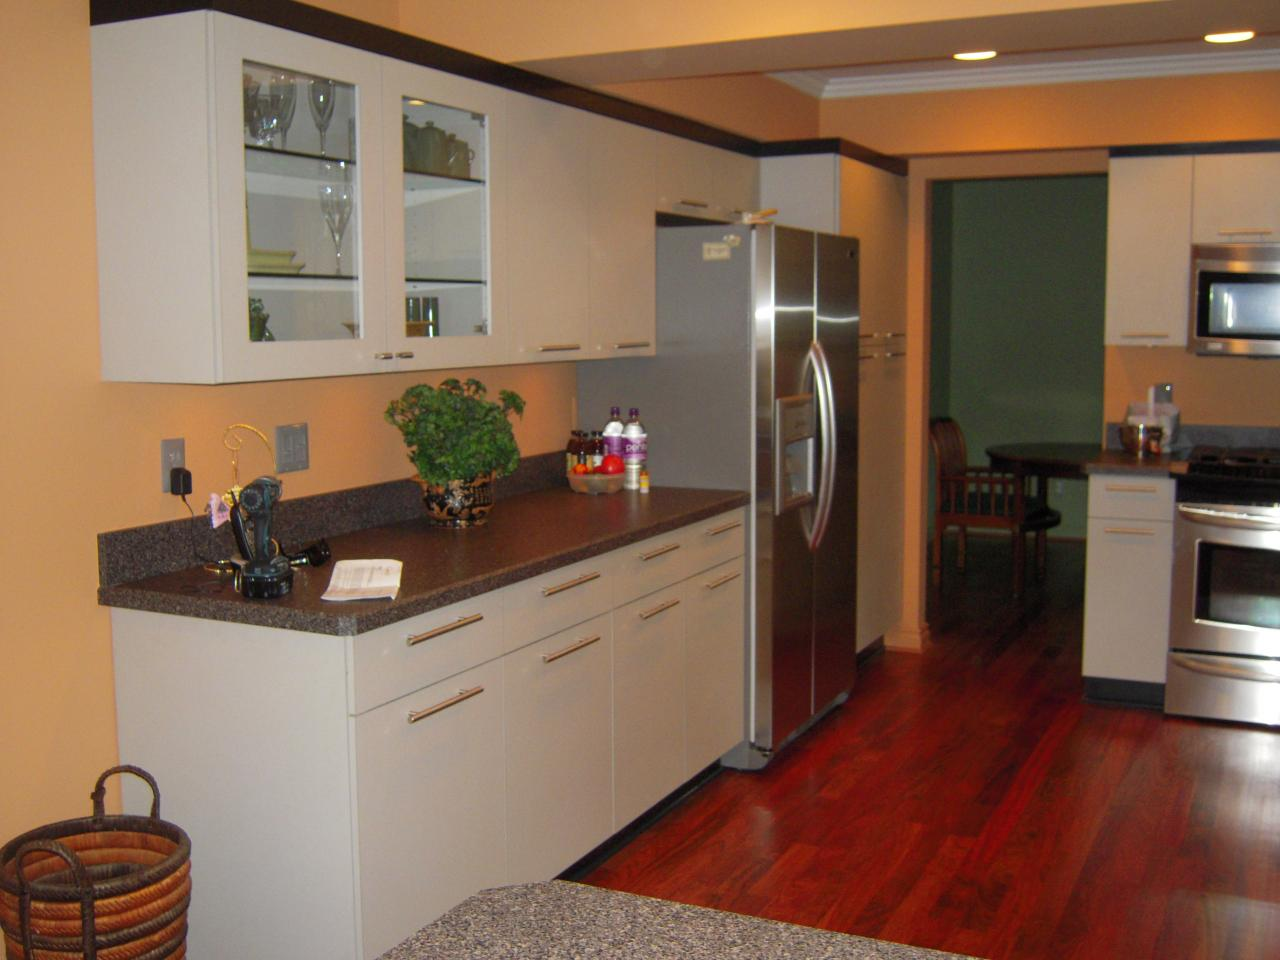 kitchen appliances for small spaces photo - 2